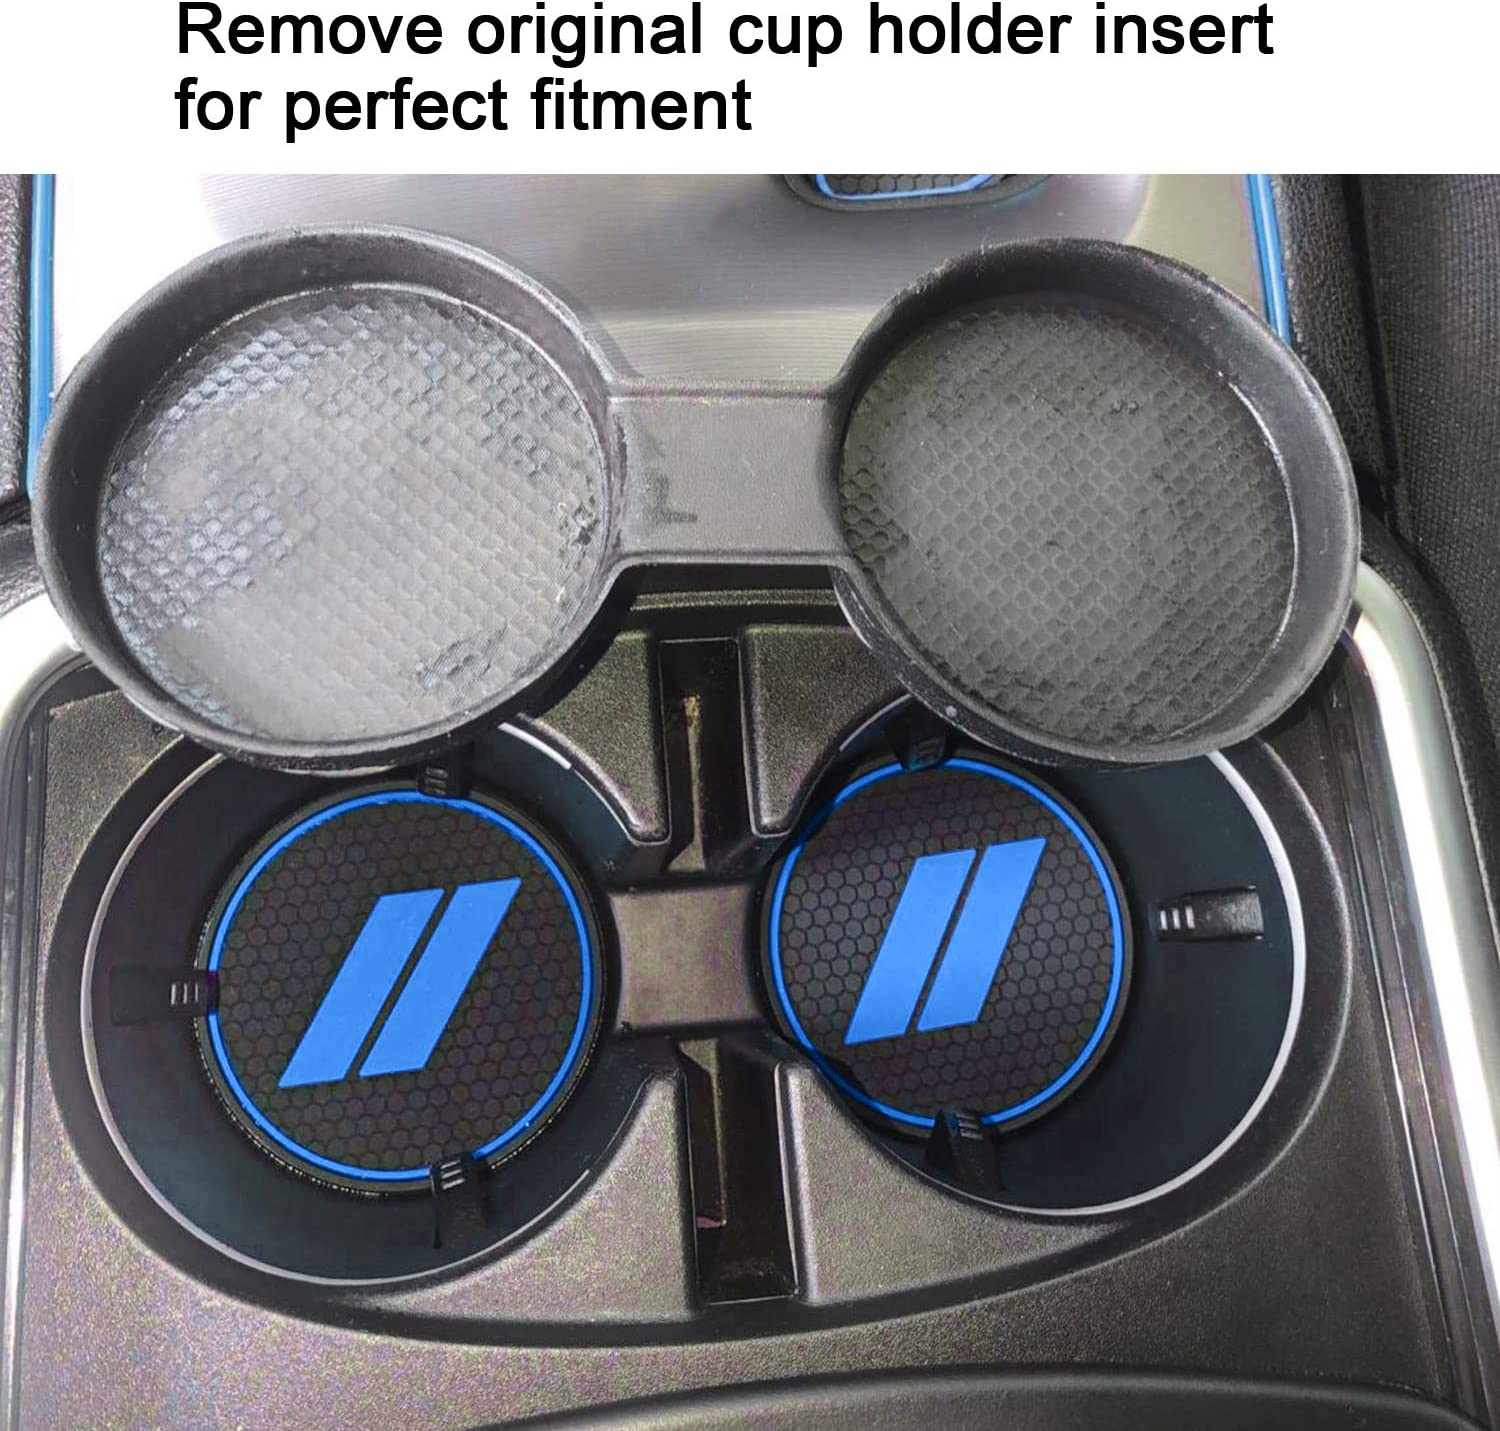 Blue Trim Center Console Liners Mat ABESTcar for Dodge Charger Accessories Cup Holder Insert 2015-2020 Interior Pocket Liners 6-pc